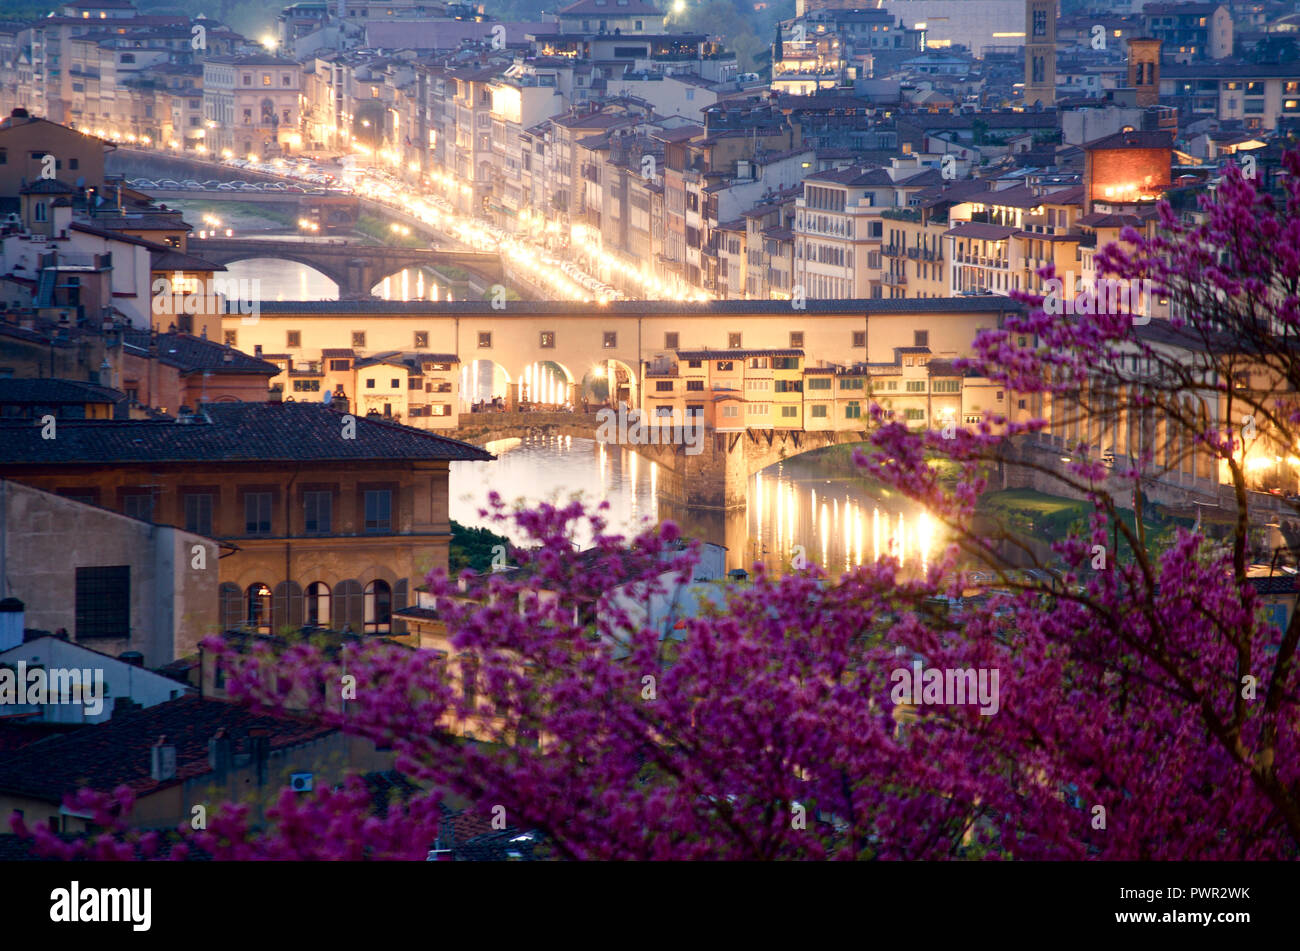 View of Ponte Vecchio Old Bridge in Florence from Piazzale Michelangelo at evening during blue hour - Stock Image